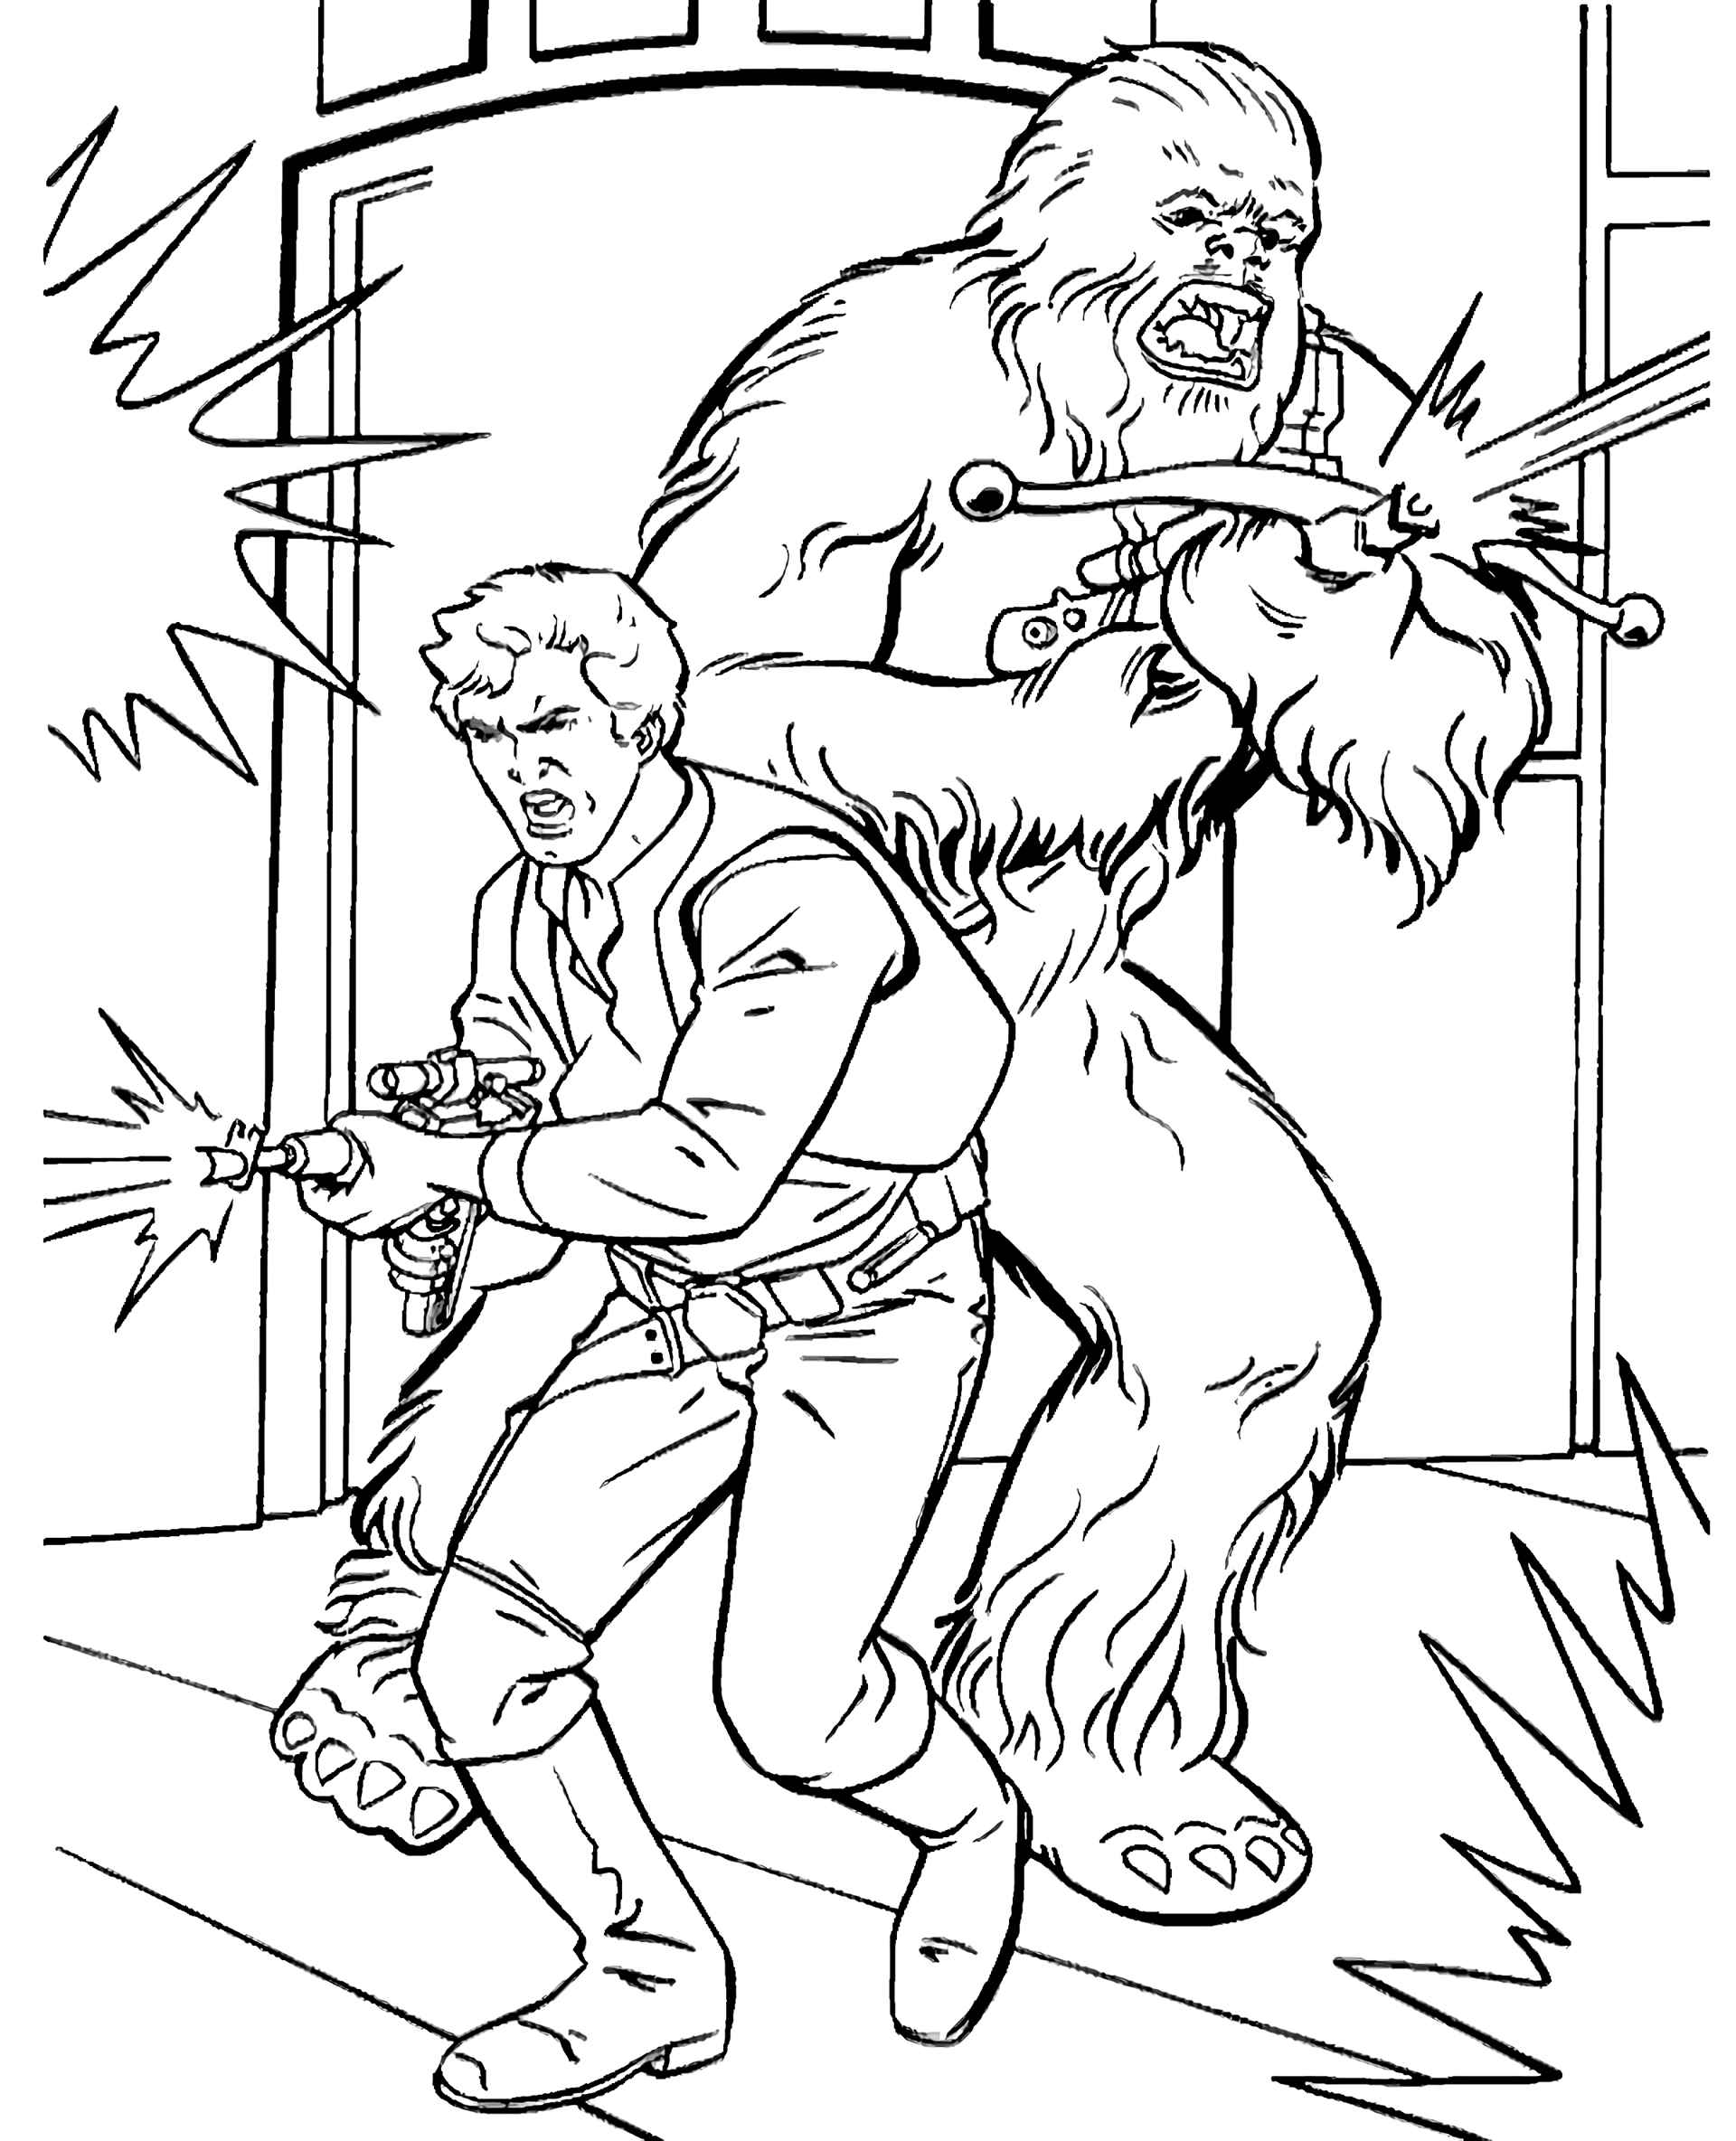 Star Wars Chewbacca And Han Solo Attack Coloring Page